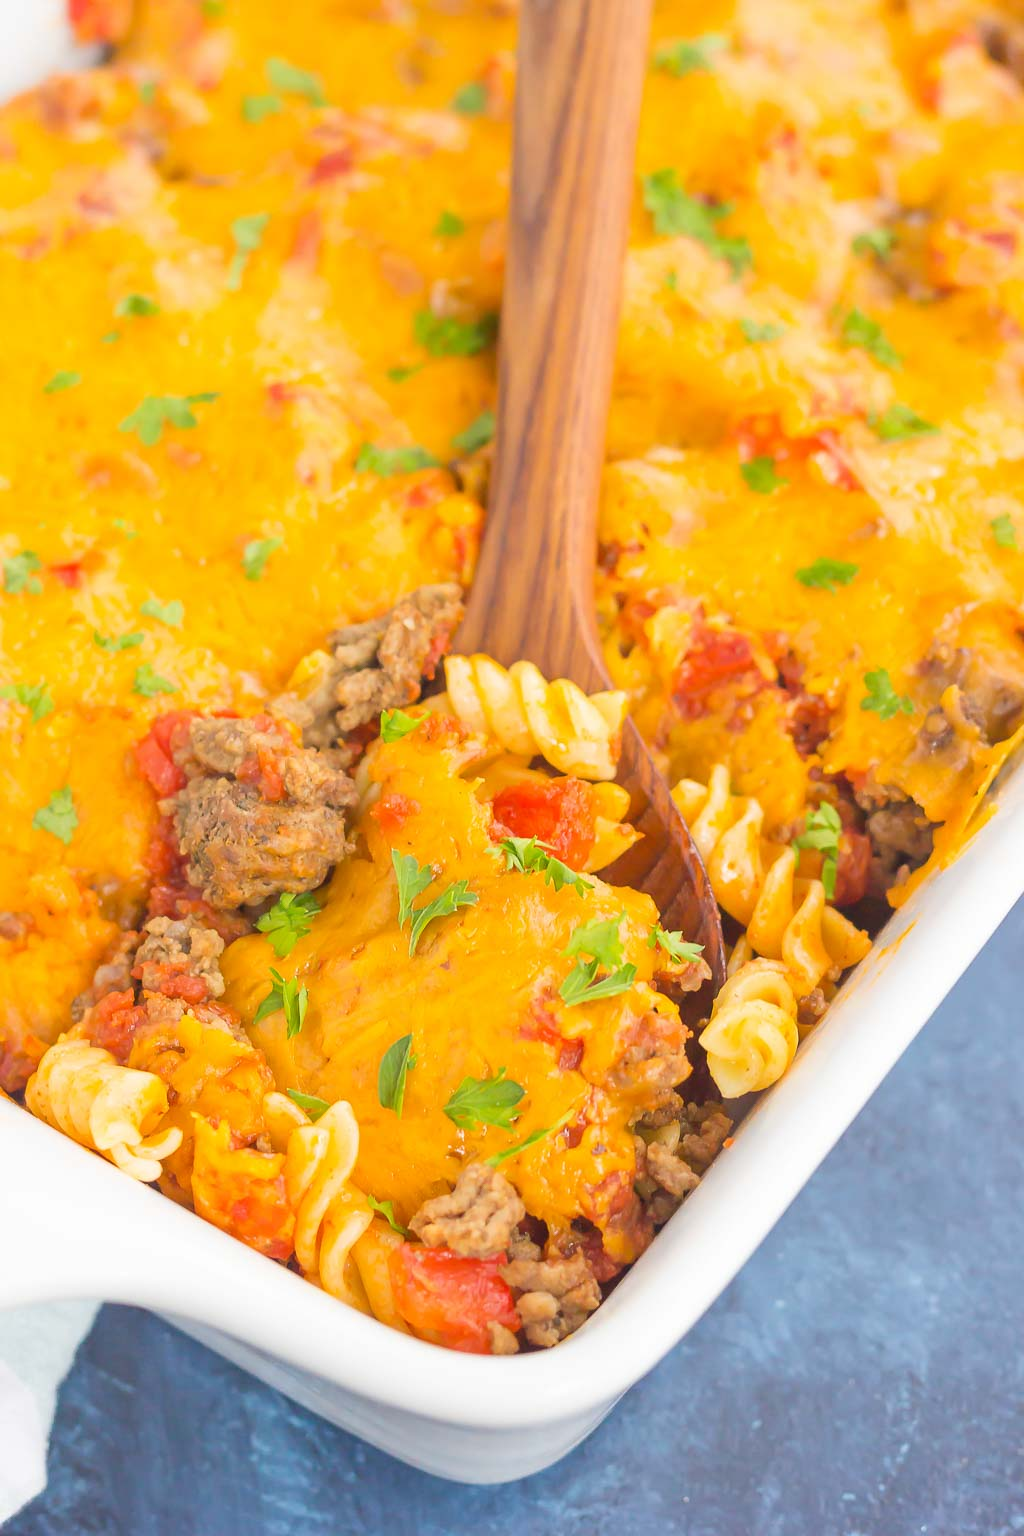 This Cheeseburger Casserole is loaded with the flavors of a classic cheeseburger, but in comfort food form. Tender pasta, seasoned ground beef, and a sprinkling of spices and cheese make this dish a family favorite for dinner!